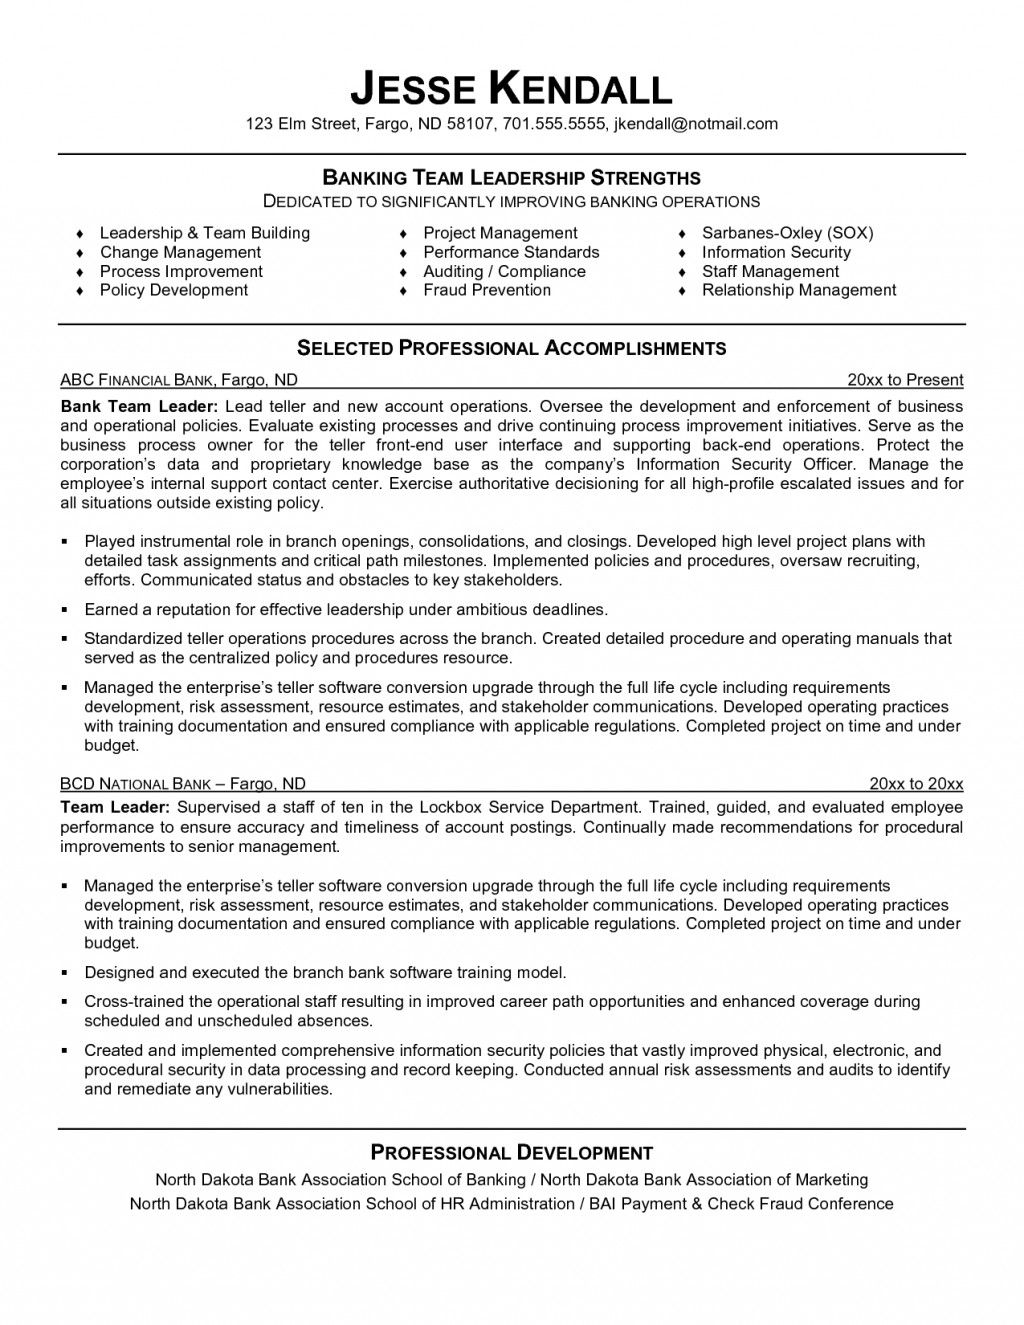 resume examples leadership skills